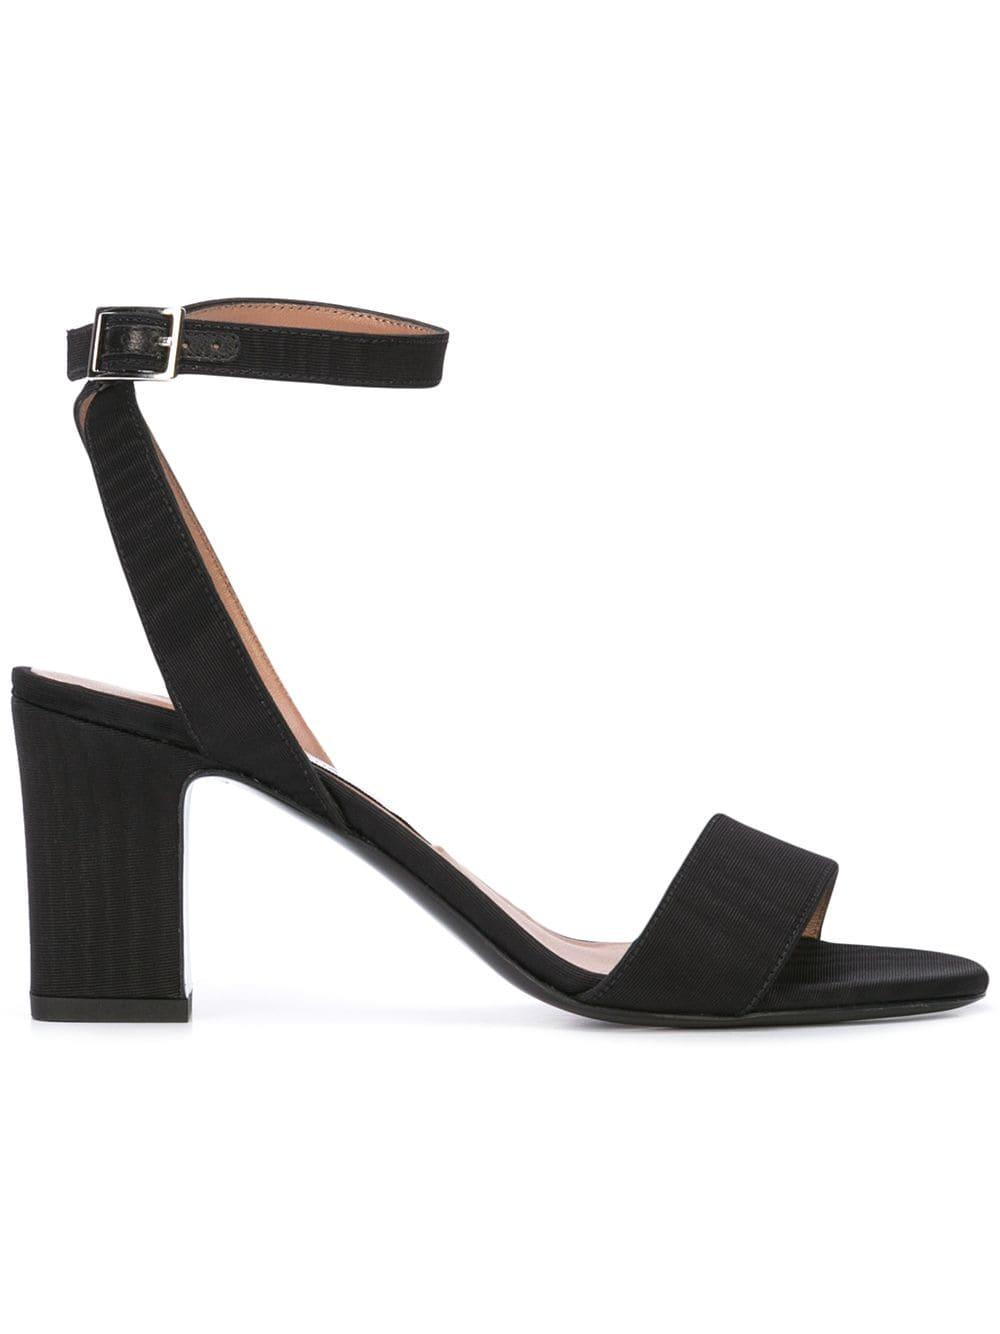 Cotton Viscose 75mm Sandal With Ankle Strap Item # LETICIA-R19